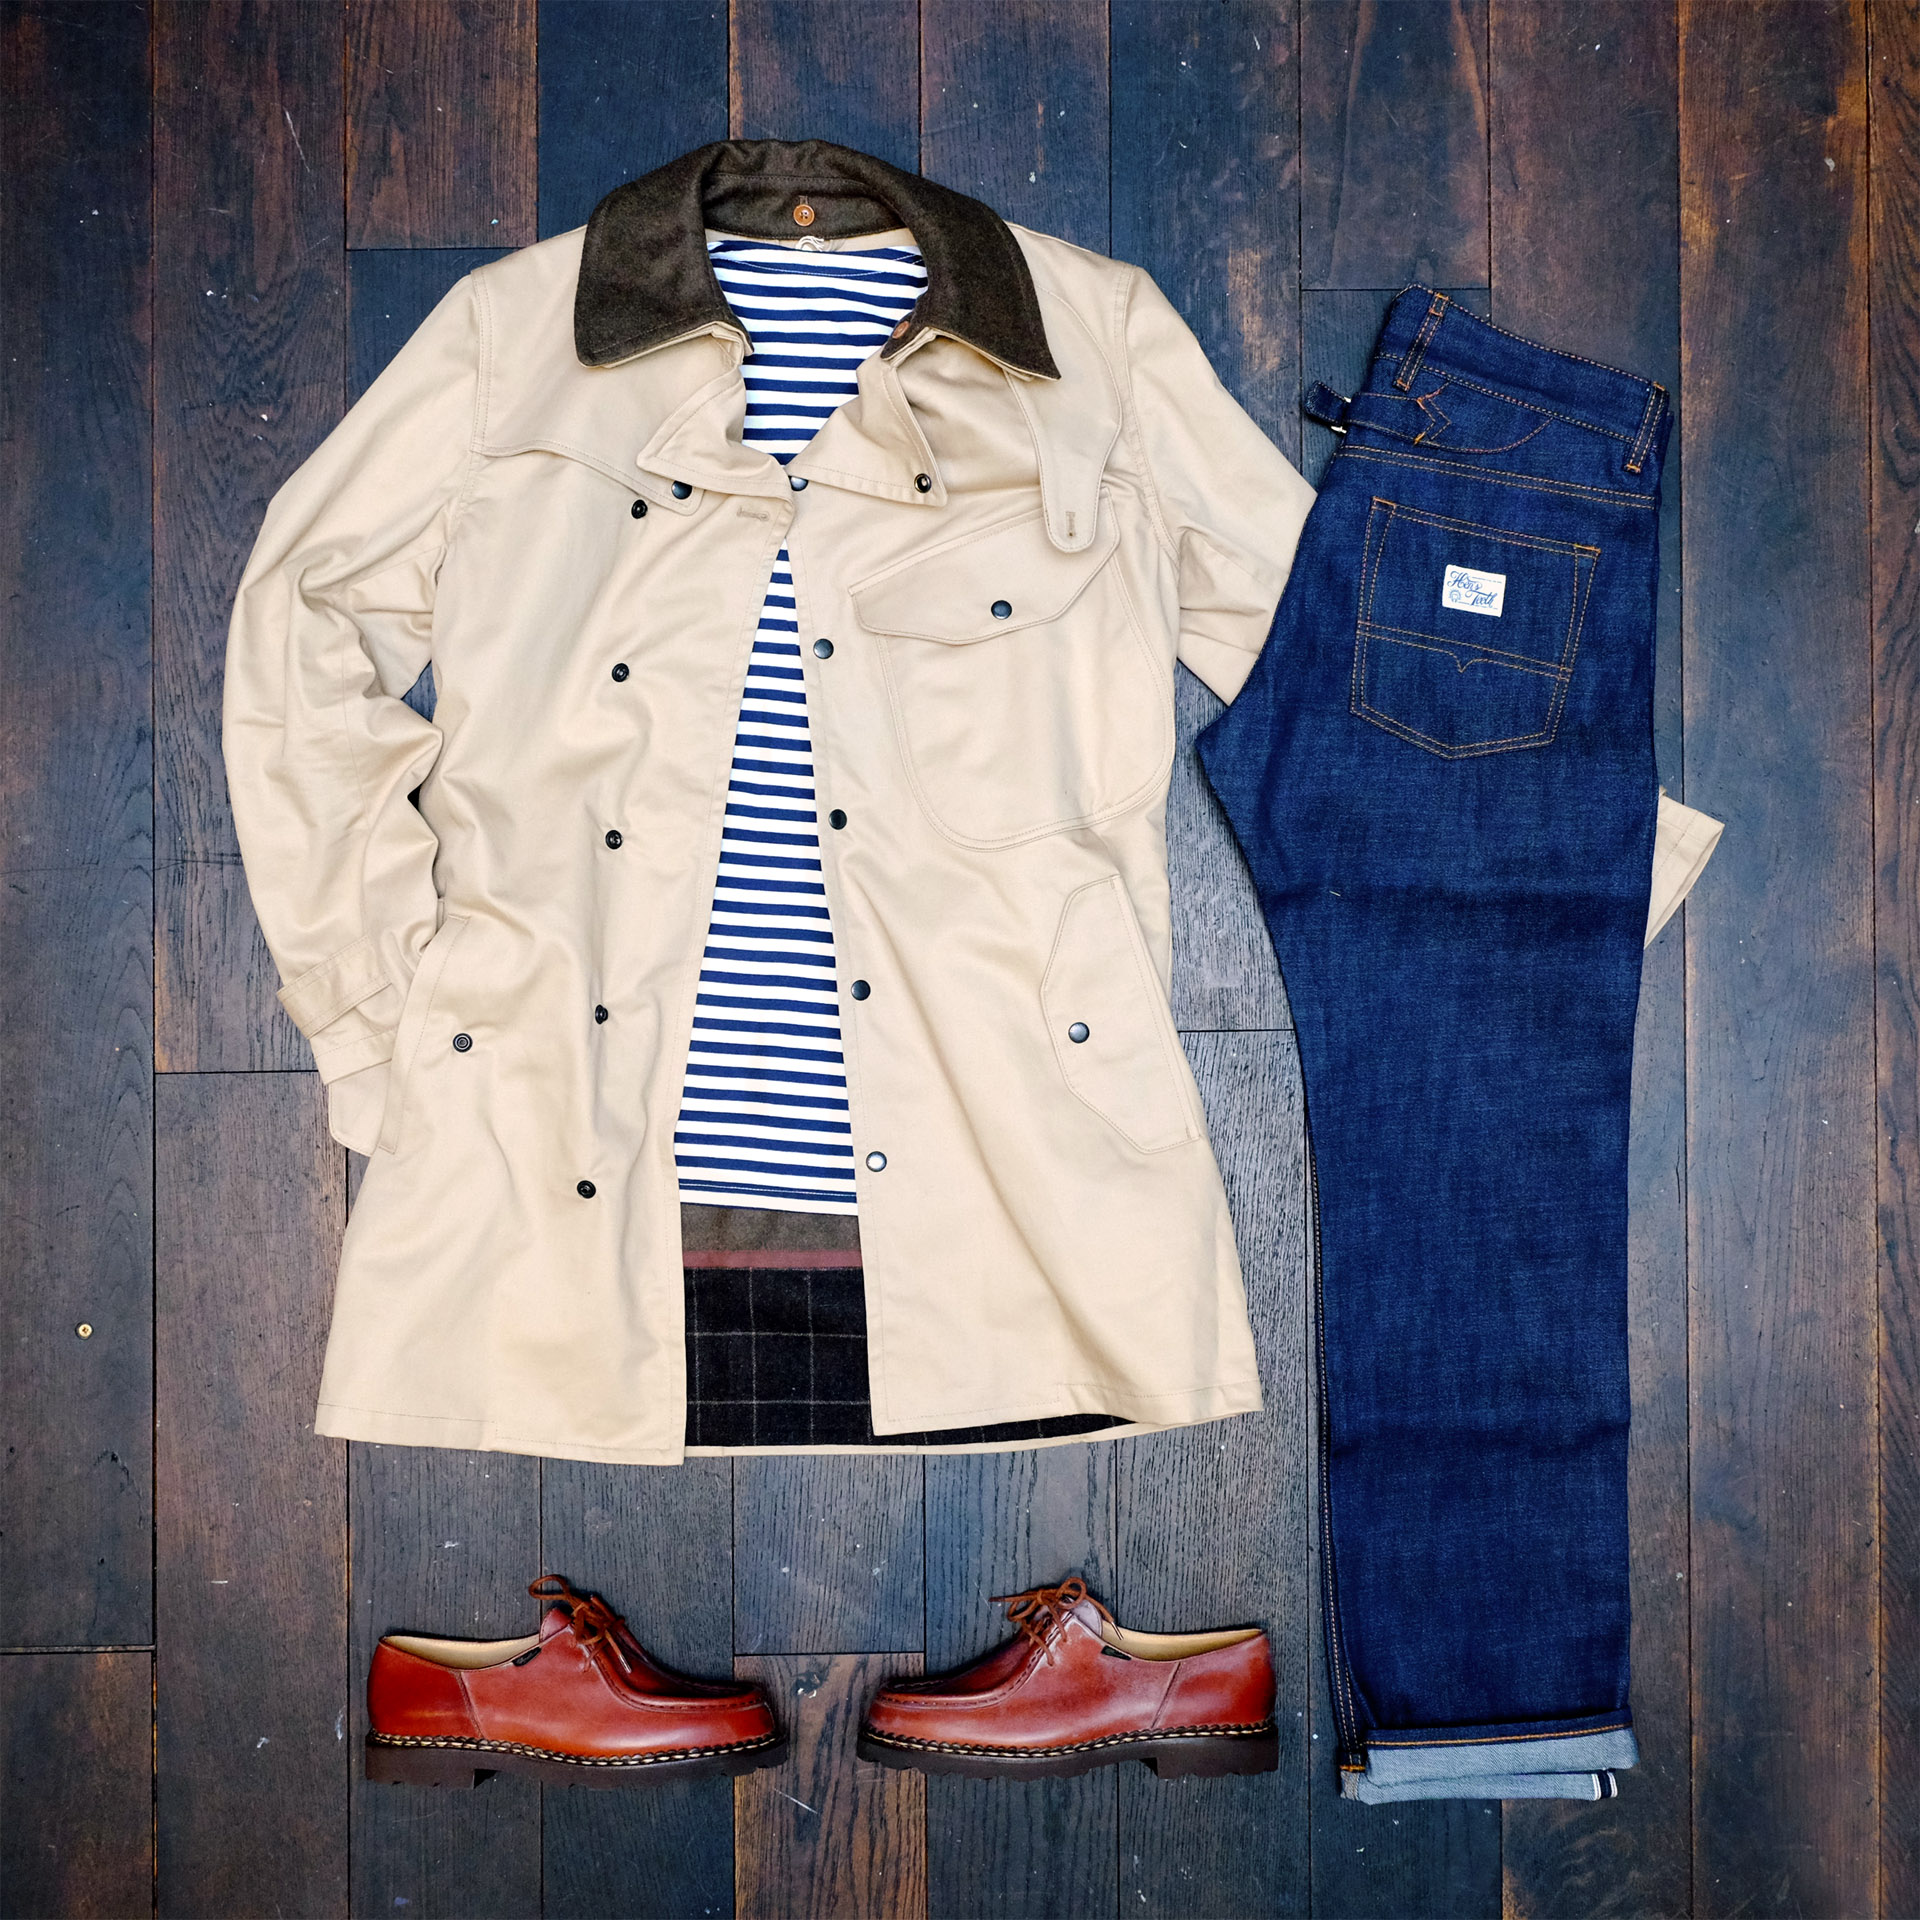 outfit-der-woche-orgueil-mantel-trenchcoat-innenfutter-hens-teeth-jeans-paraboot-stripes